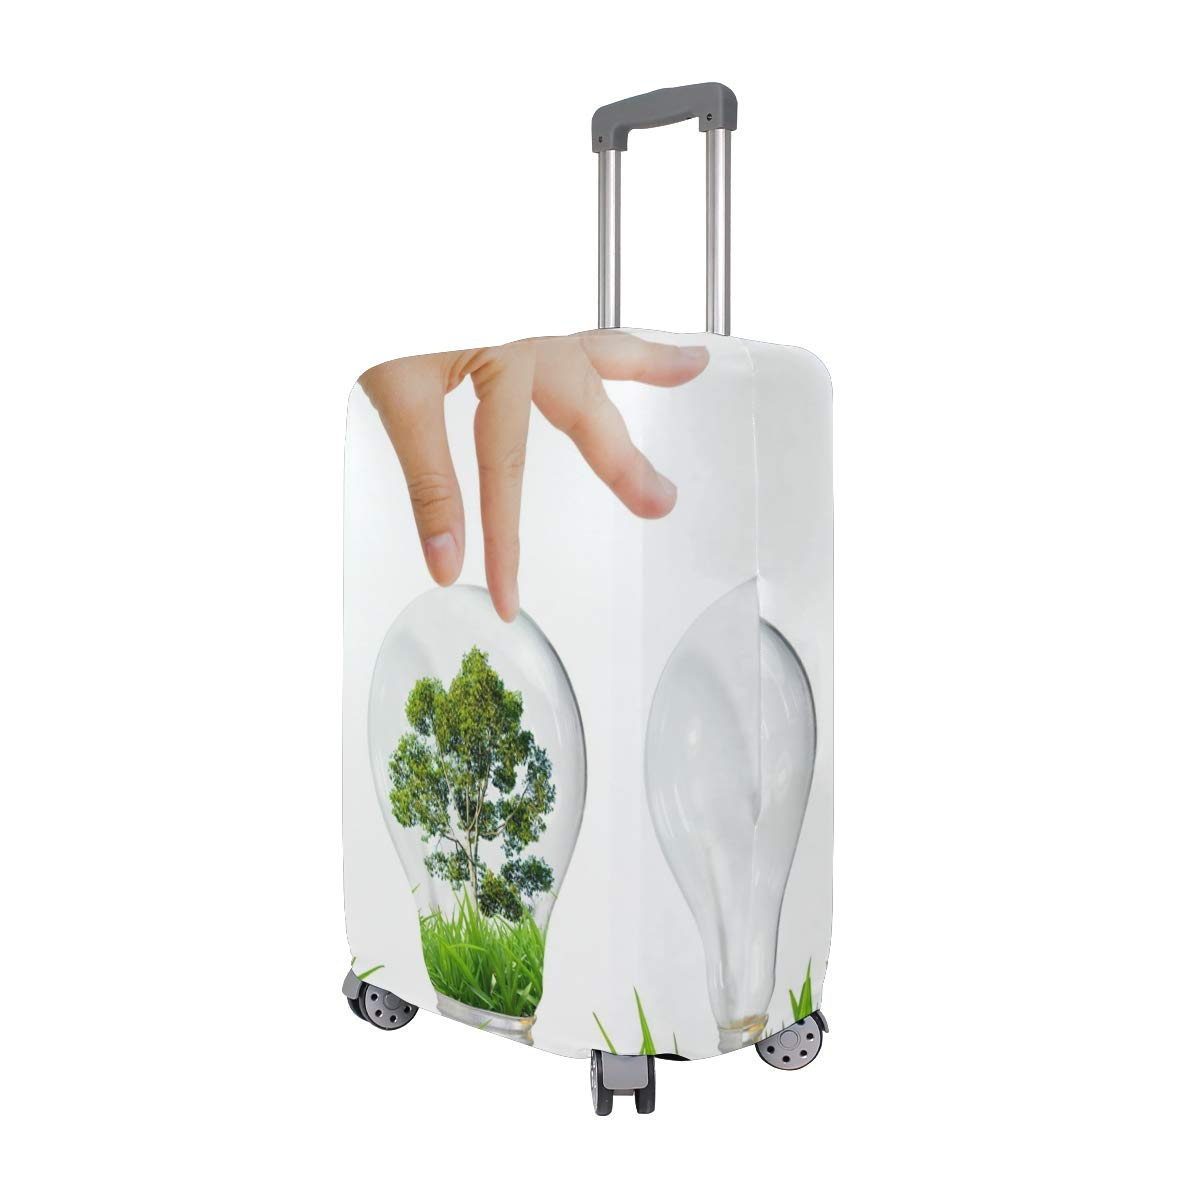 Environmental Protection Ecology Light Bulb Grass Tree Creative Design suitcase cover elastic suitcase cover zipper luggage case removable cleaning suitable for 29-32 trunk cover